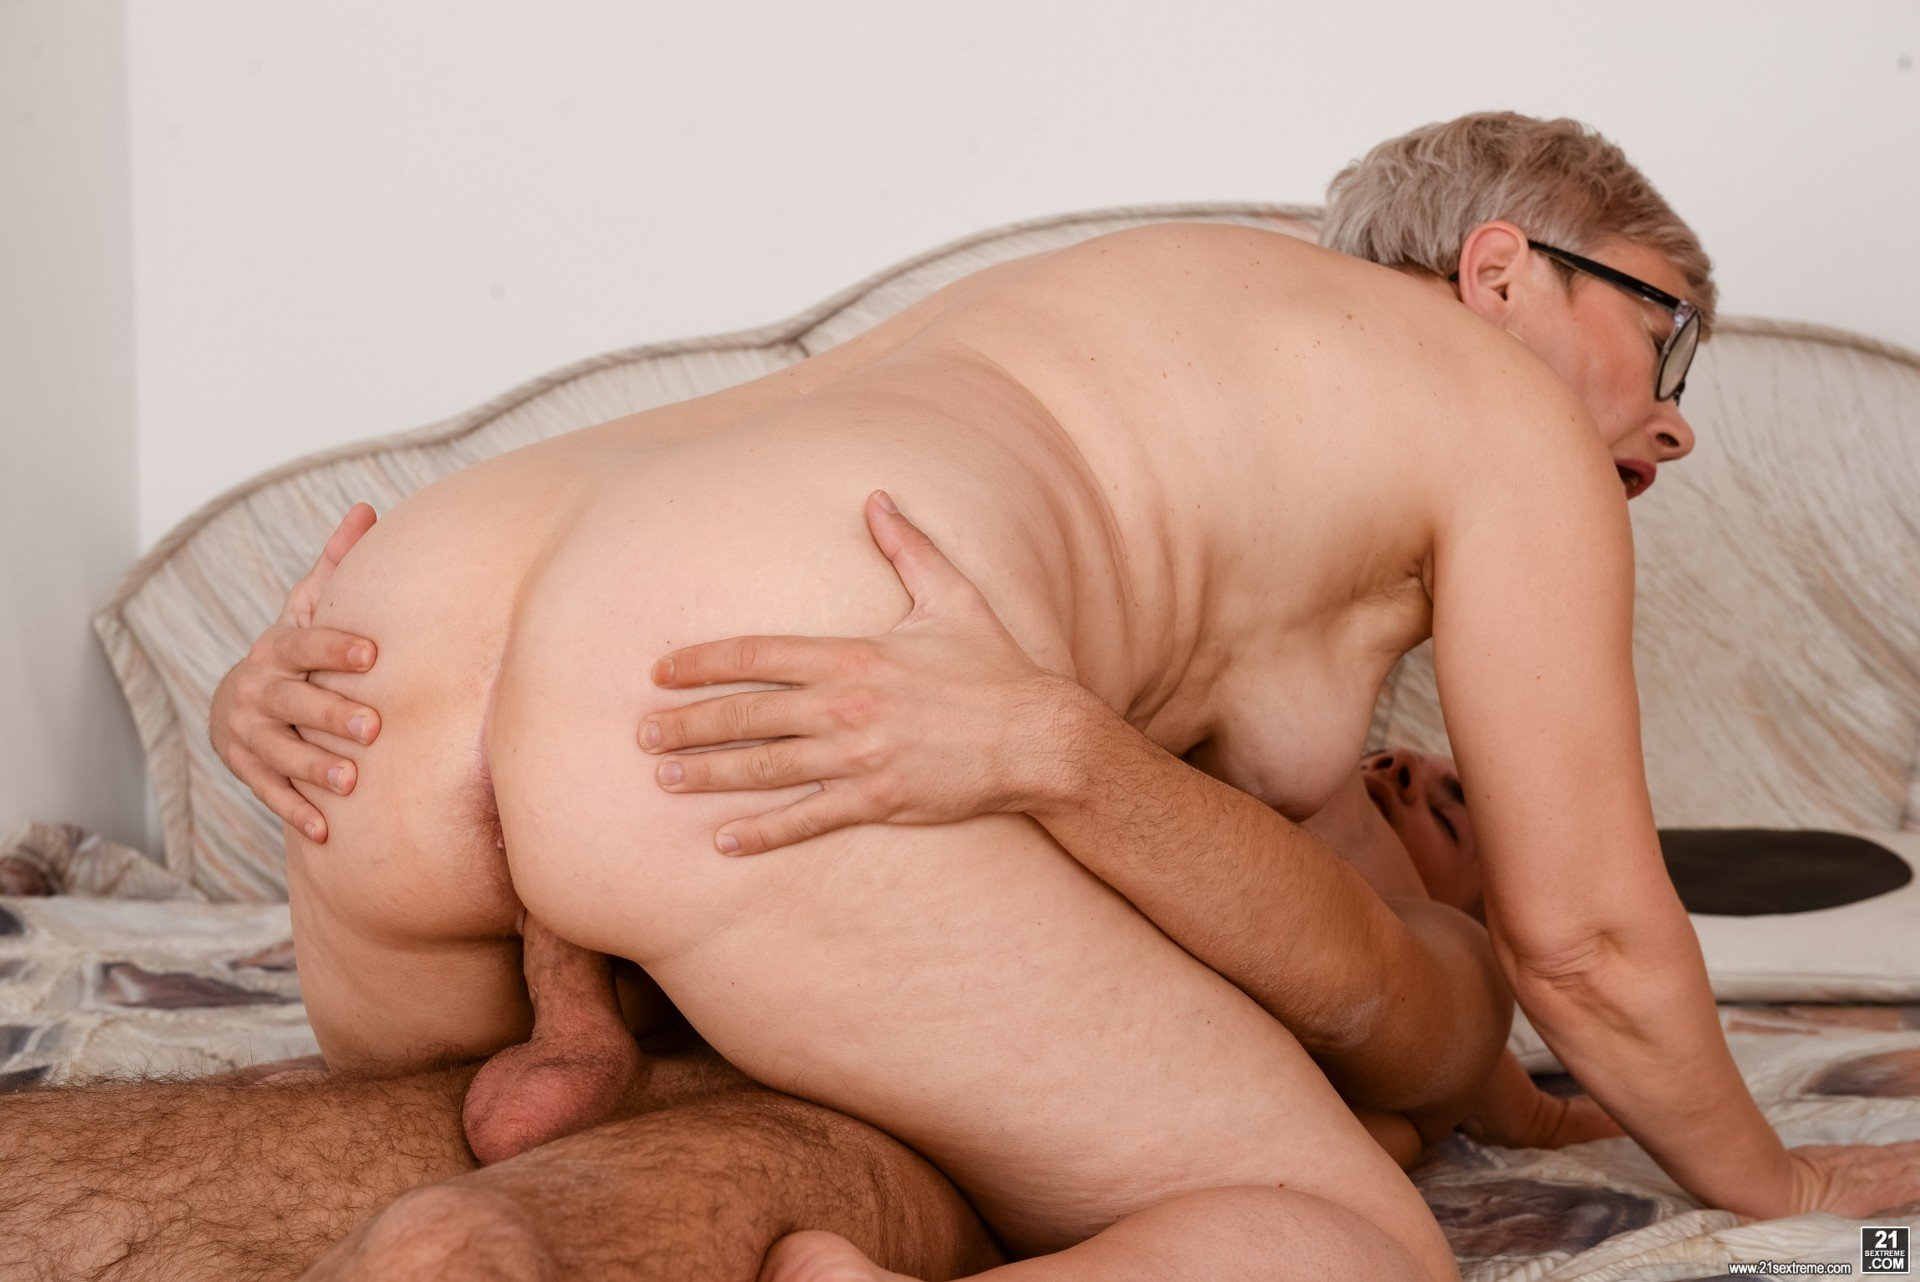 Watch free granny porn pics on xhamster select